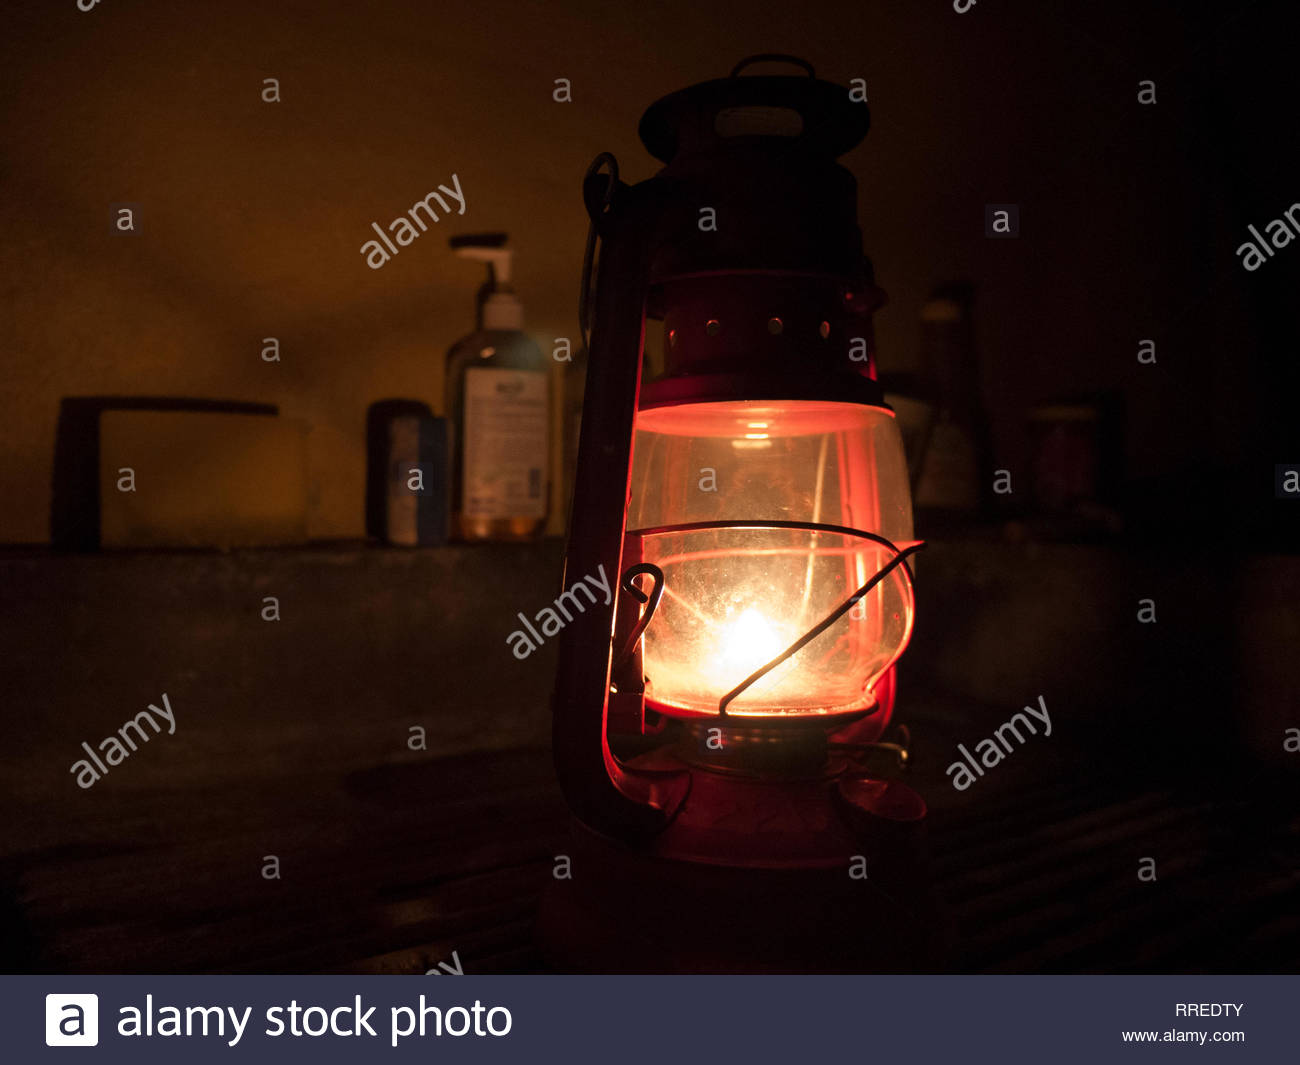 Kerosene lamps are lighting a house during a power outage in Jinnotega, Nicaragua - Stock Image